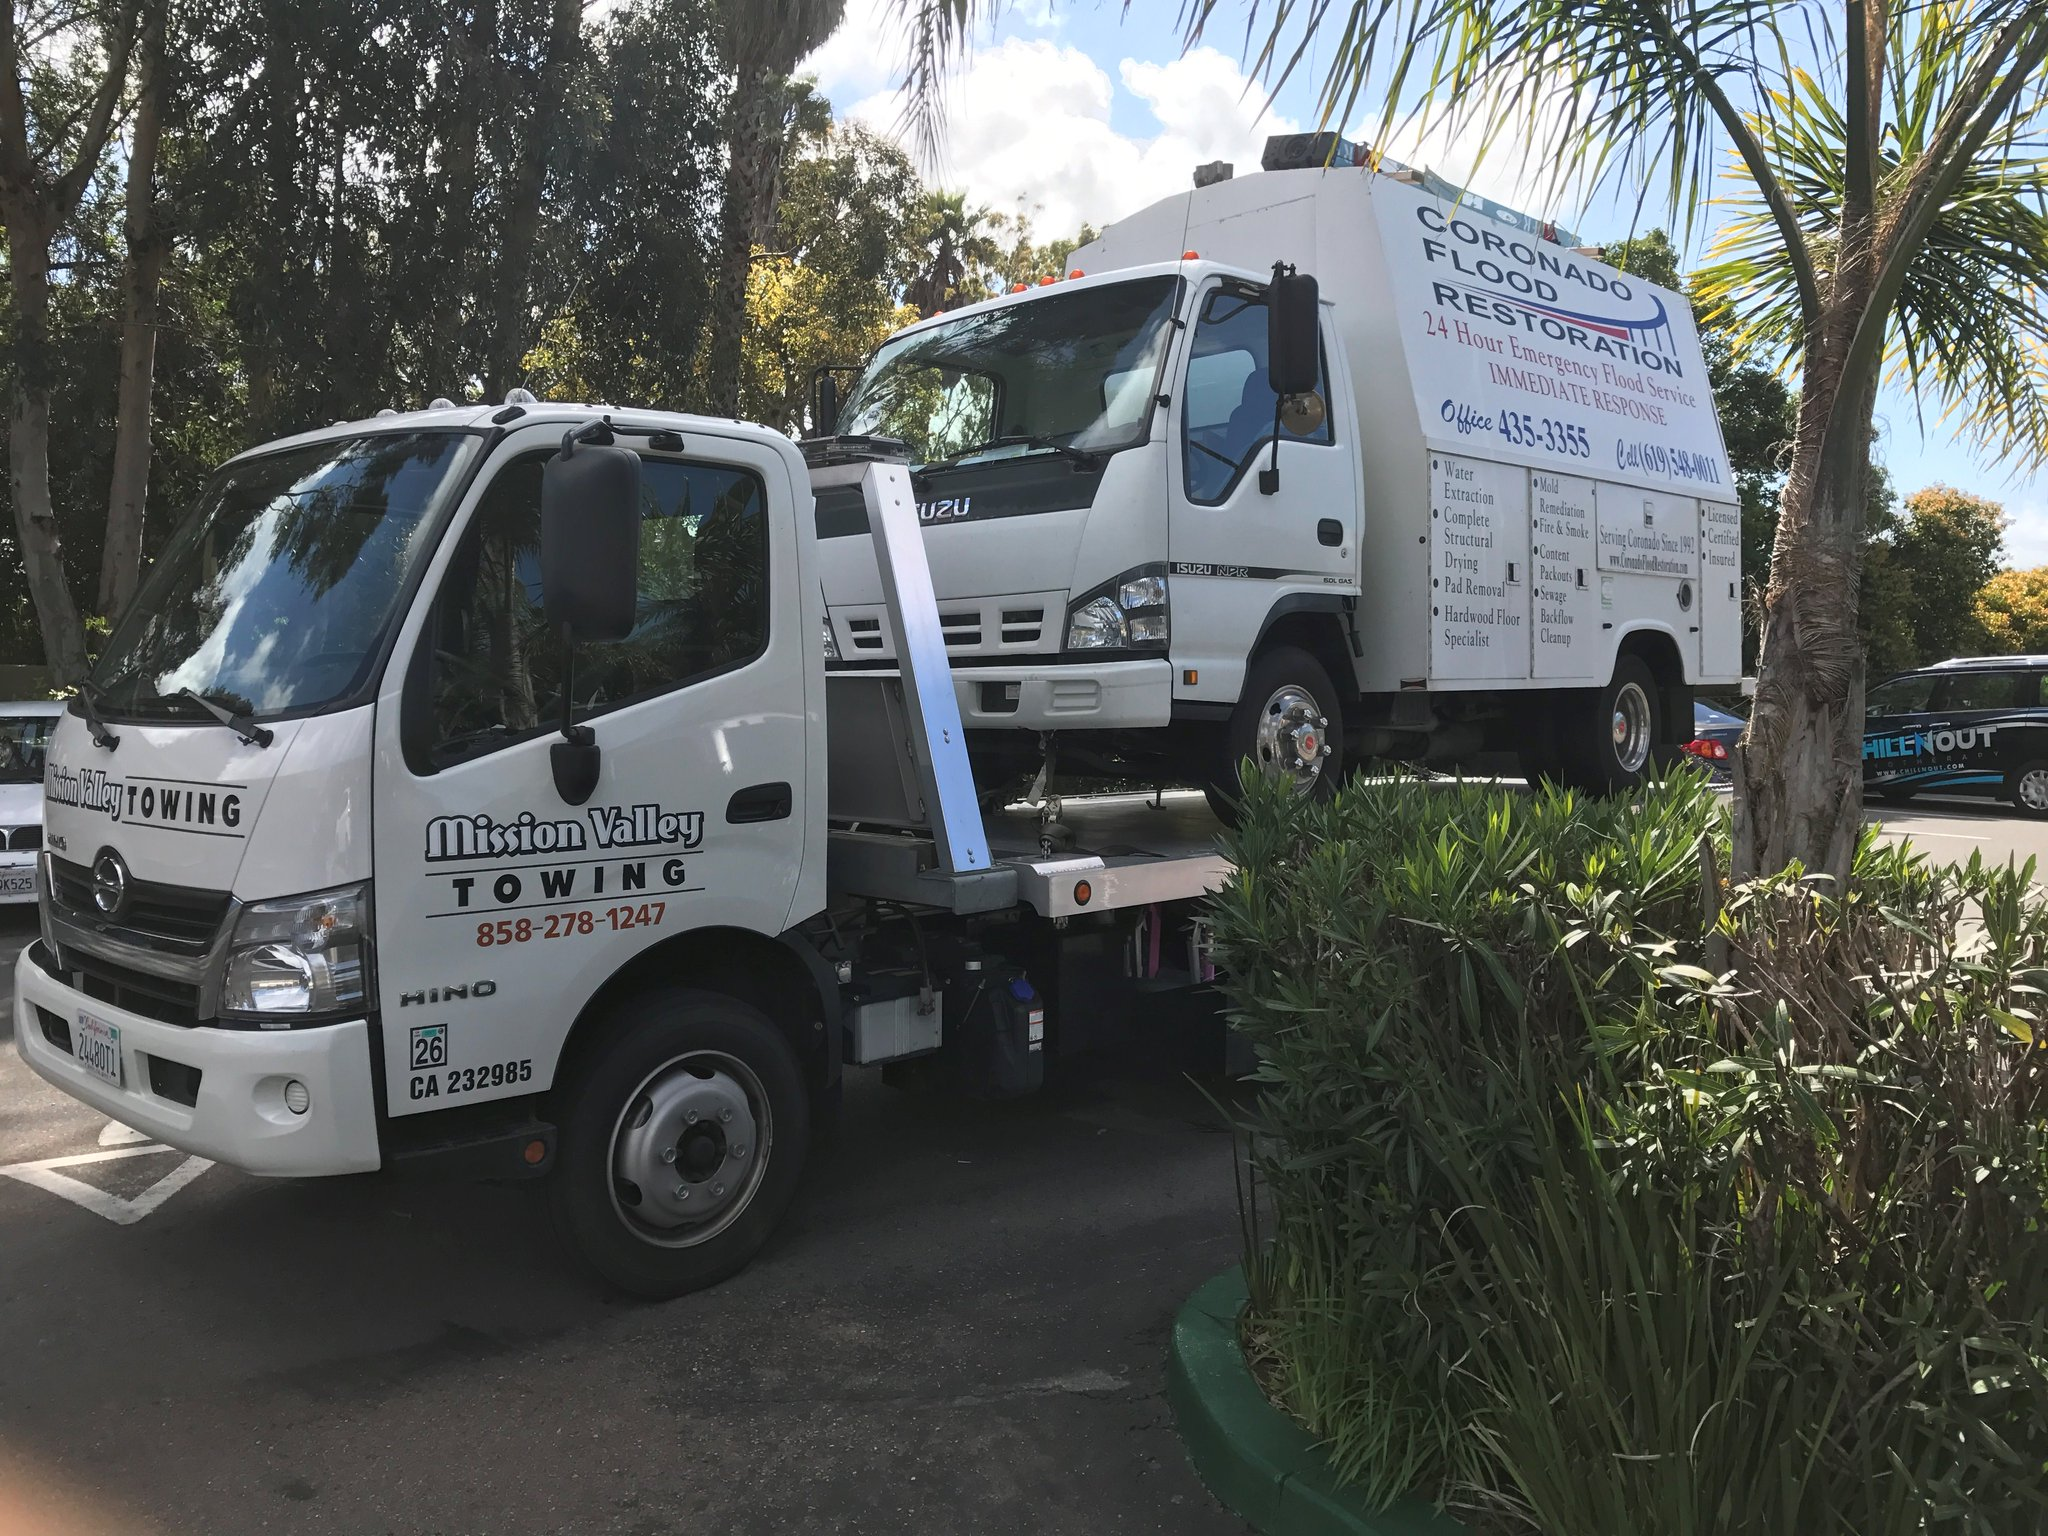 Towing a van or heavy truck in San Diego County